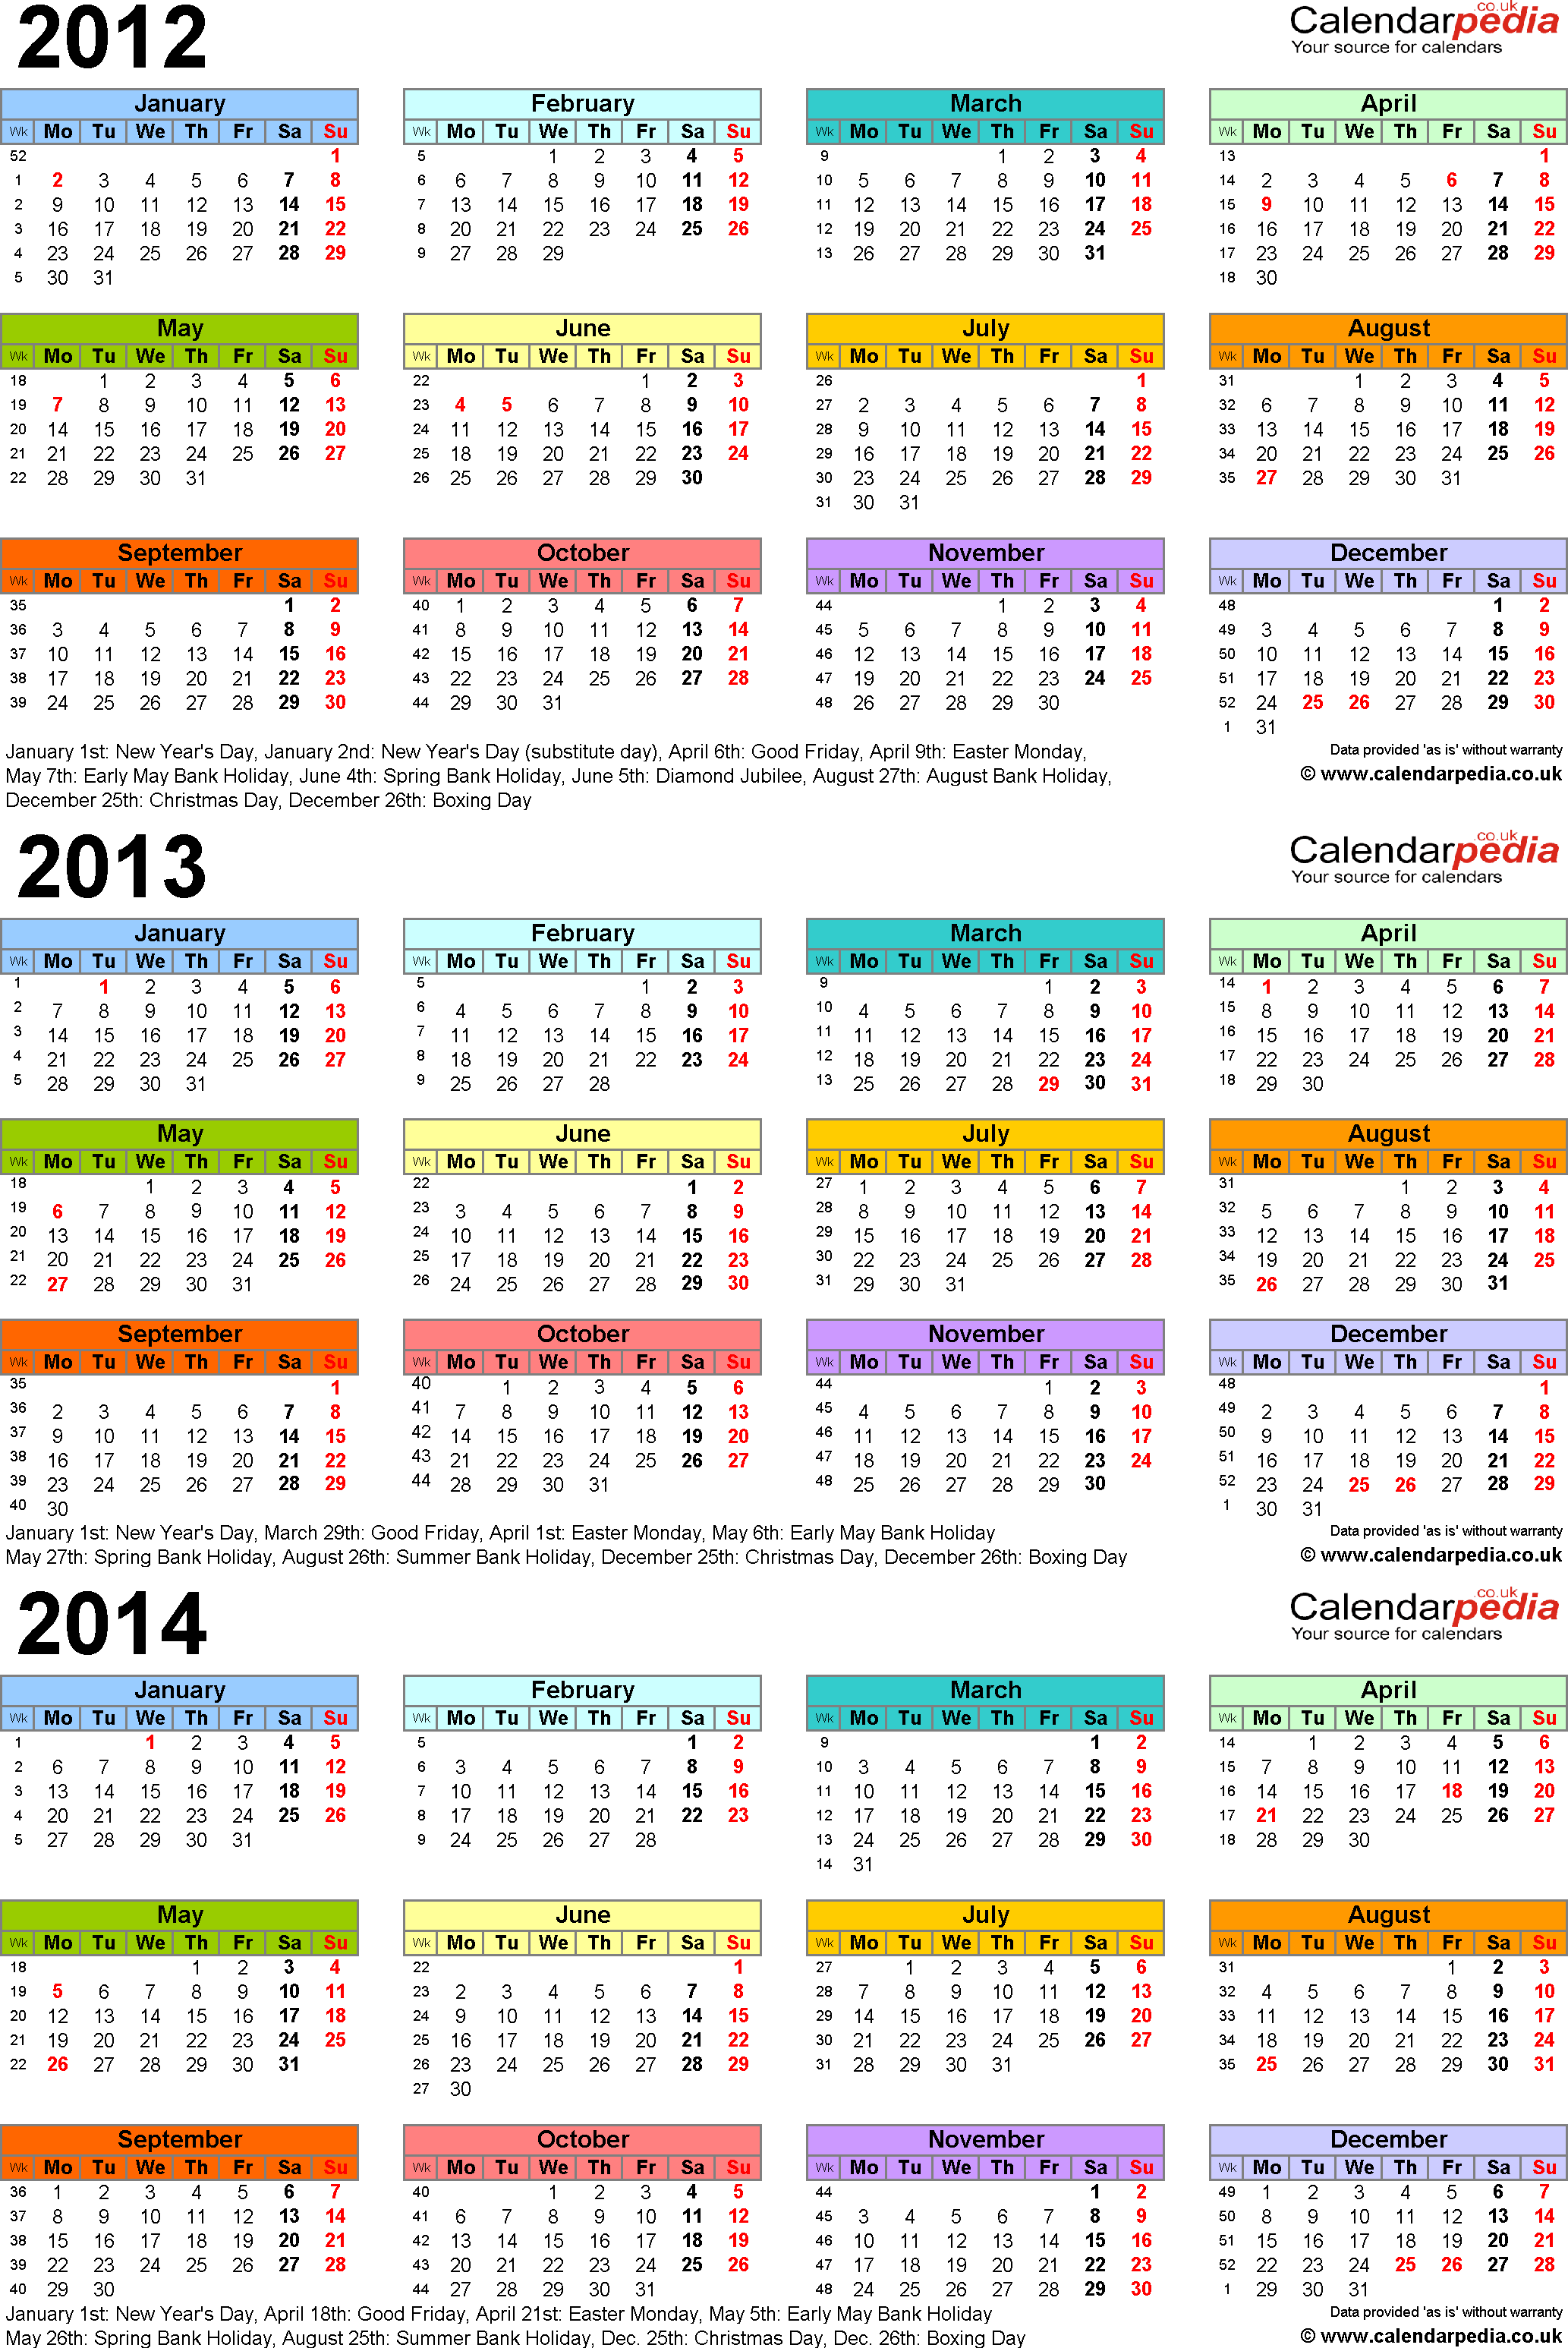 Template 3: Excel template for three year calendar 2012-2014 in colour (portrait orientation, 1 page, A4)